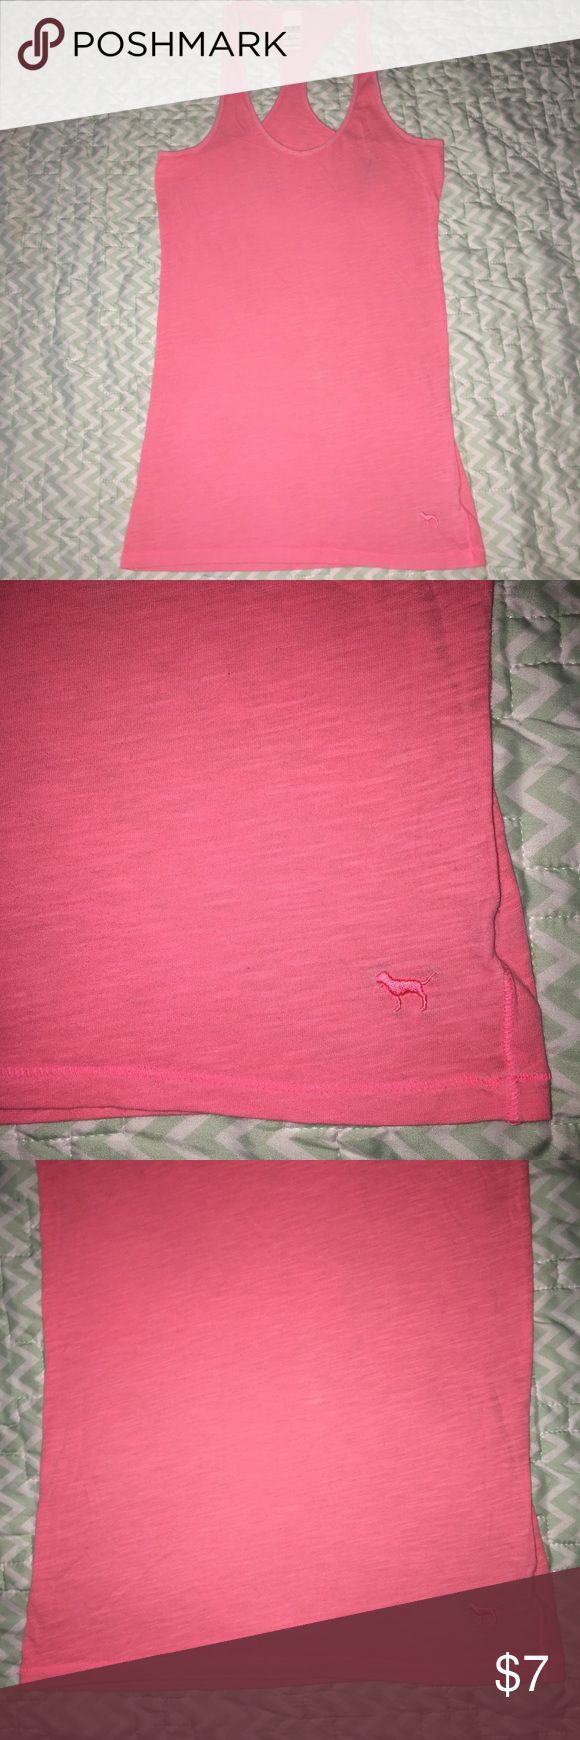 PINK Victoria's Secret Razorback Tank - XS *Flawed 25% off 7+ Items.  PRICE is negotiable, unless otherwise stated.   Details: FLAWED, has a stain line as pictured. Razorback tank top. Similar to Tee Shirt material. Could also fit Small.   COLOR: Peachy Pink  Size: Extra Small   Brand: Victoria's Secret PINK  Condition: Good to Fair Used   #CksOverload #ShopNow #Share #Follow #ISO #InstaShop #ForSale #NOTRADE  ••I do NOT TRADE••  Used items may contain piling &/or signs of wash and wear…